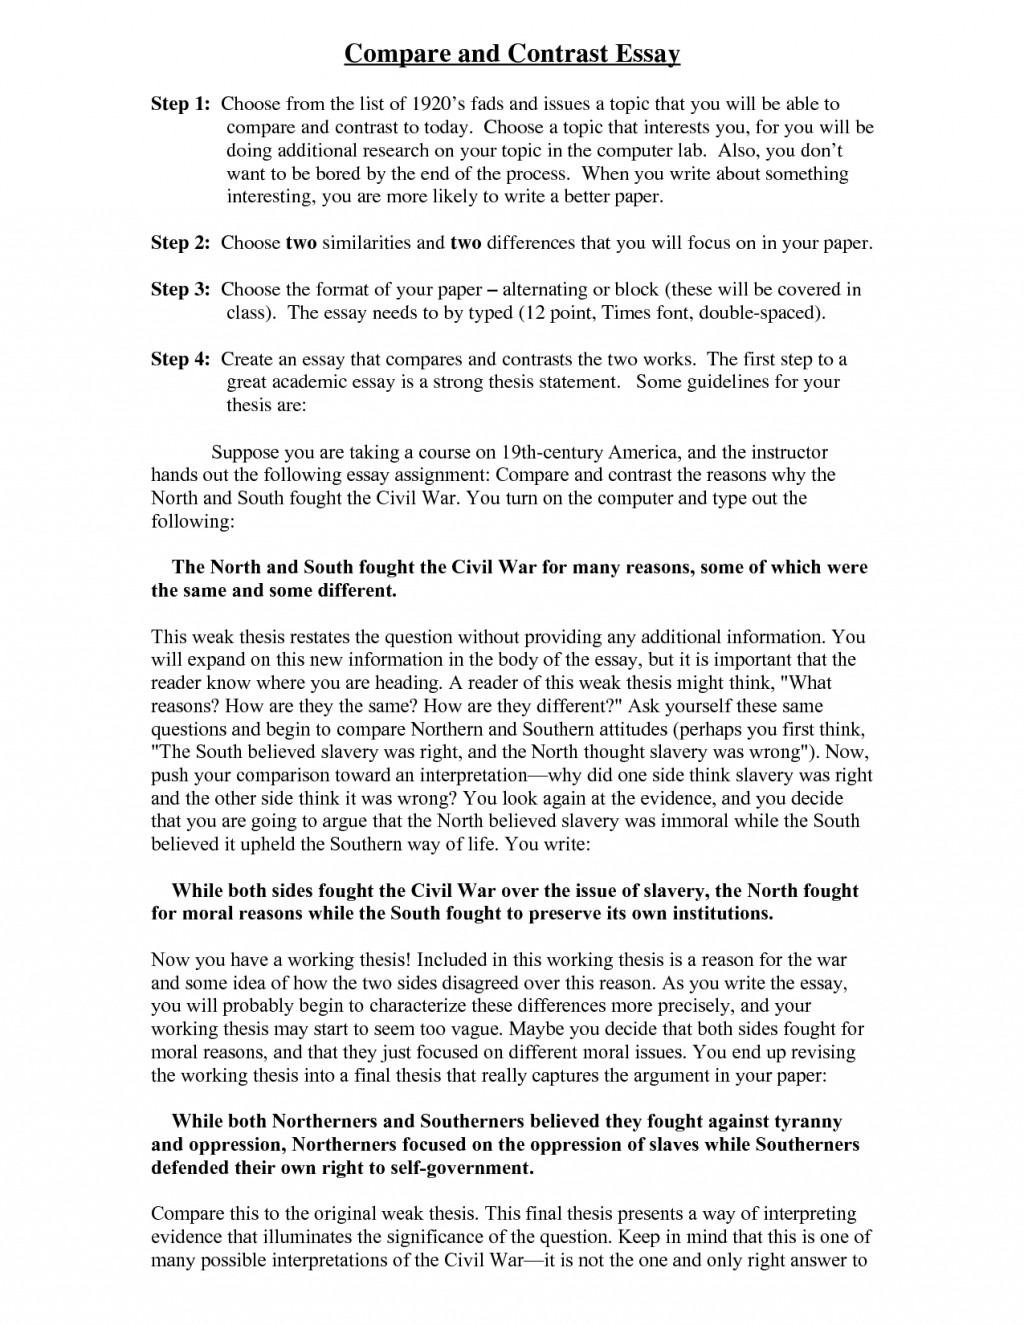 015 How To Write Comparison Essay Topic Compare And Contrast Example Mla Format Art Thesis Custom Resume Incredible A Outline Introduction Ap World History Large